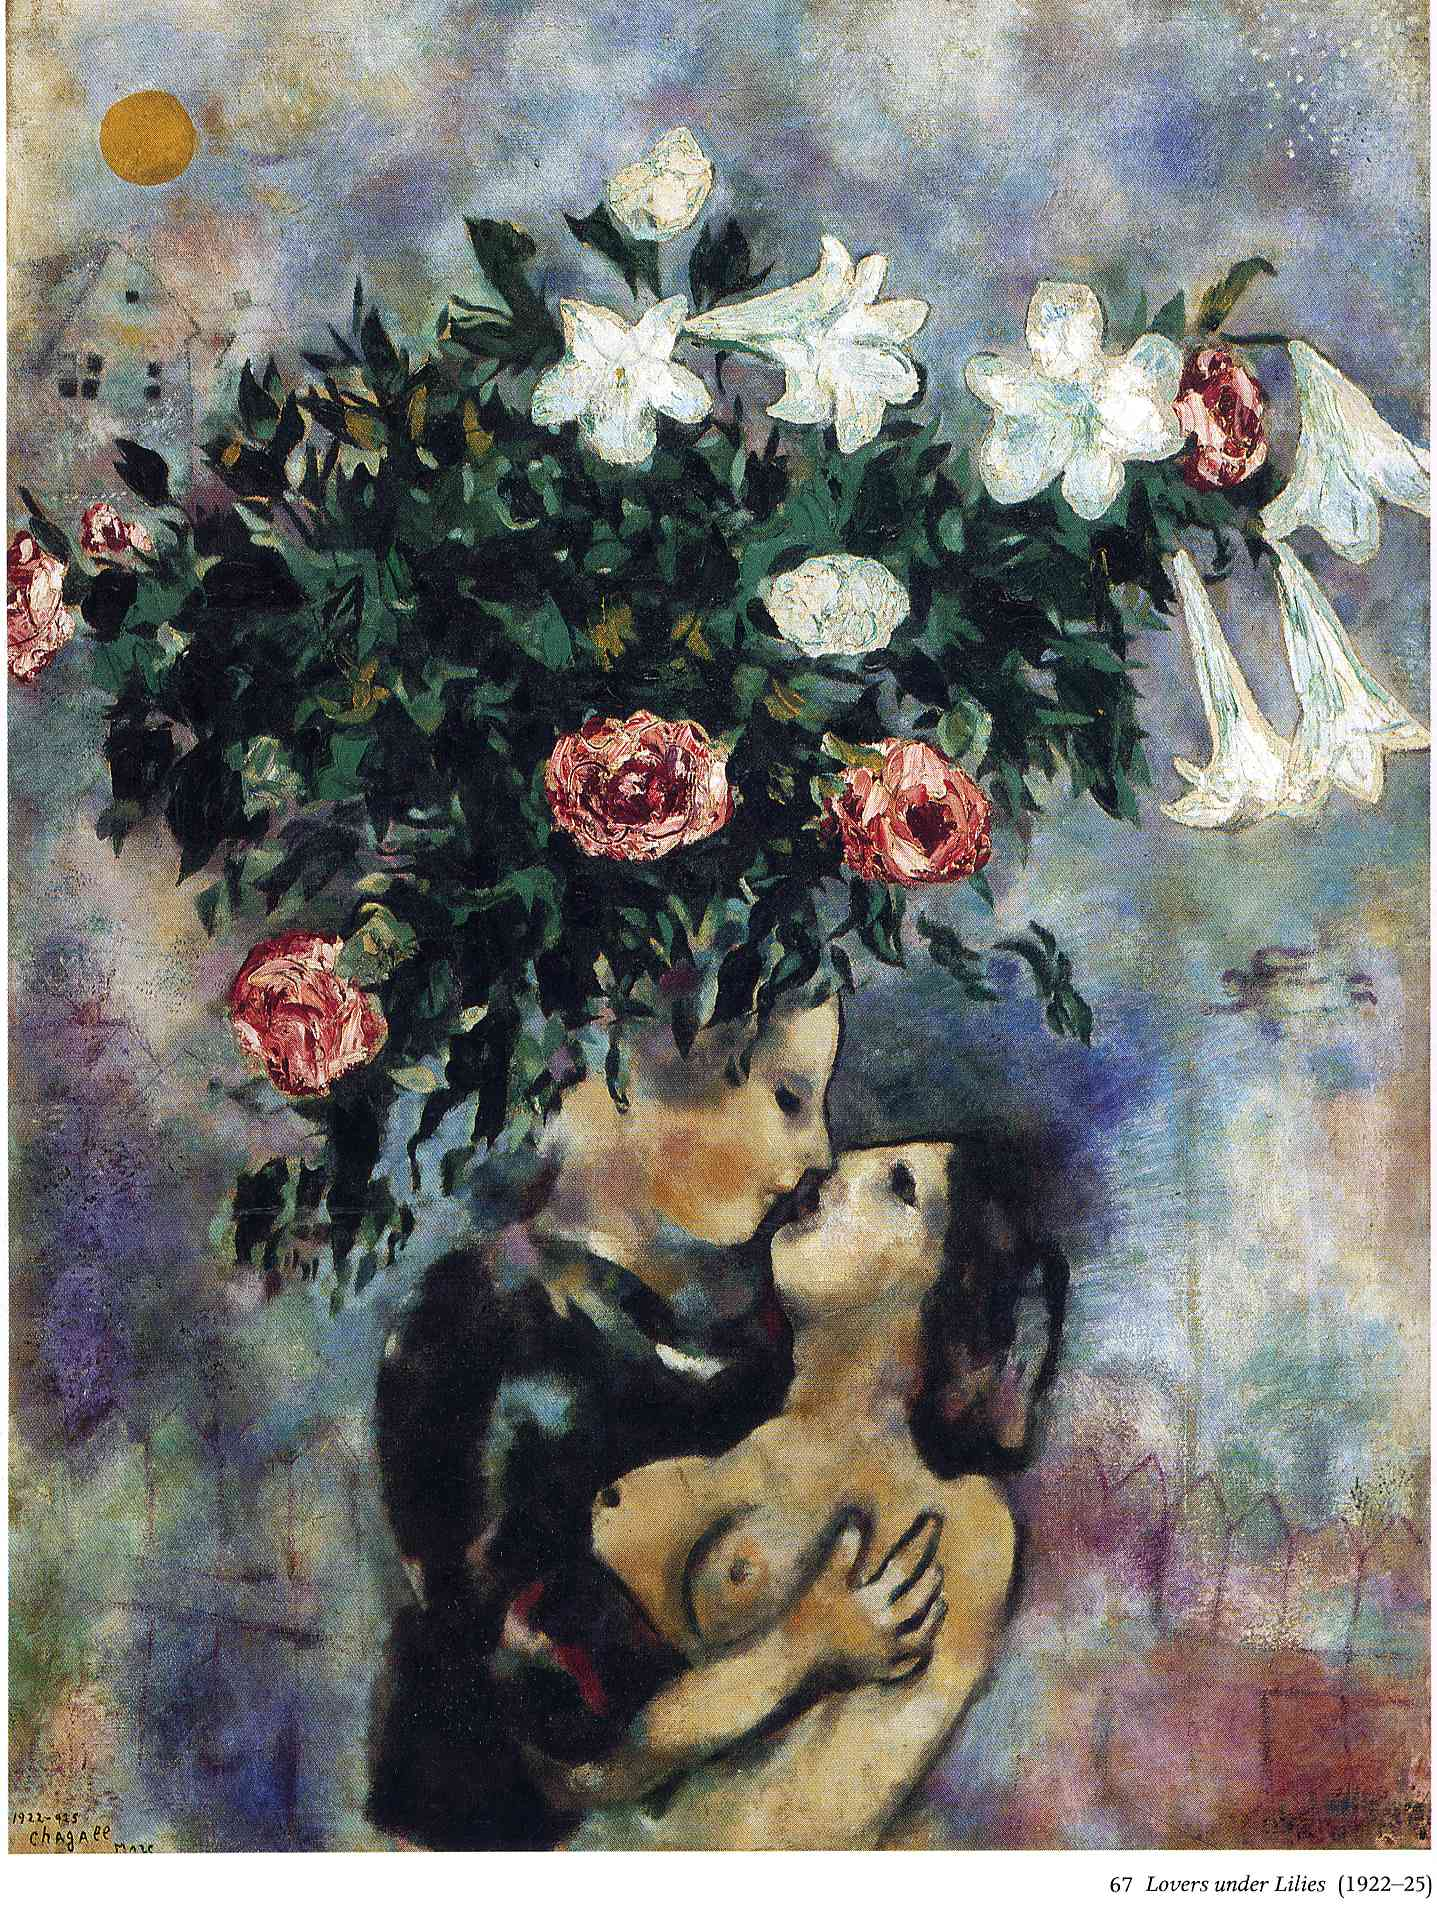 Lovers under lilies - Marc Chagall - WikiArt.org ... Chagall Afbeeldingen